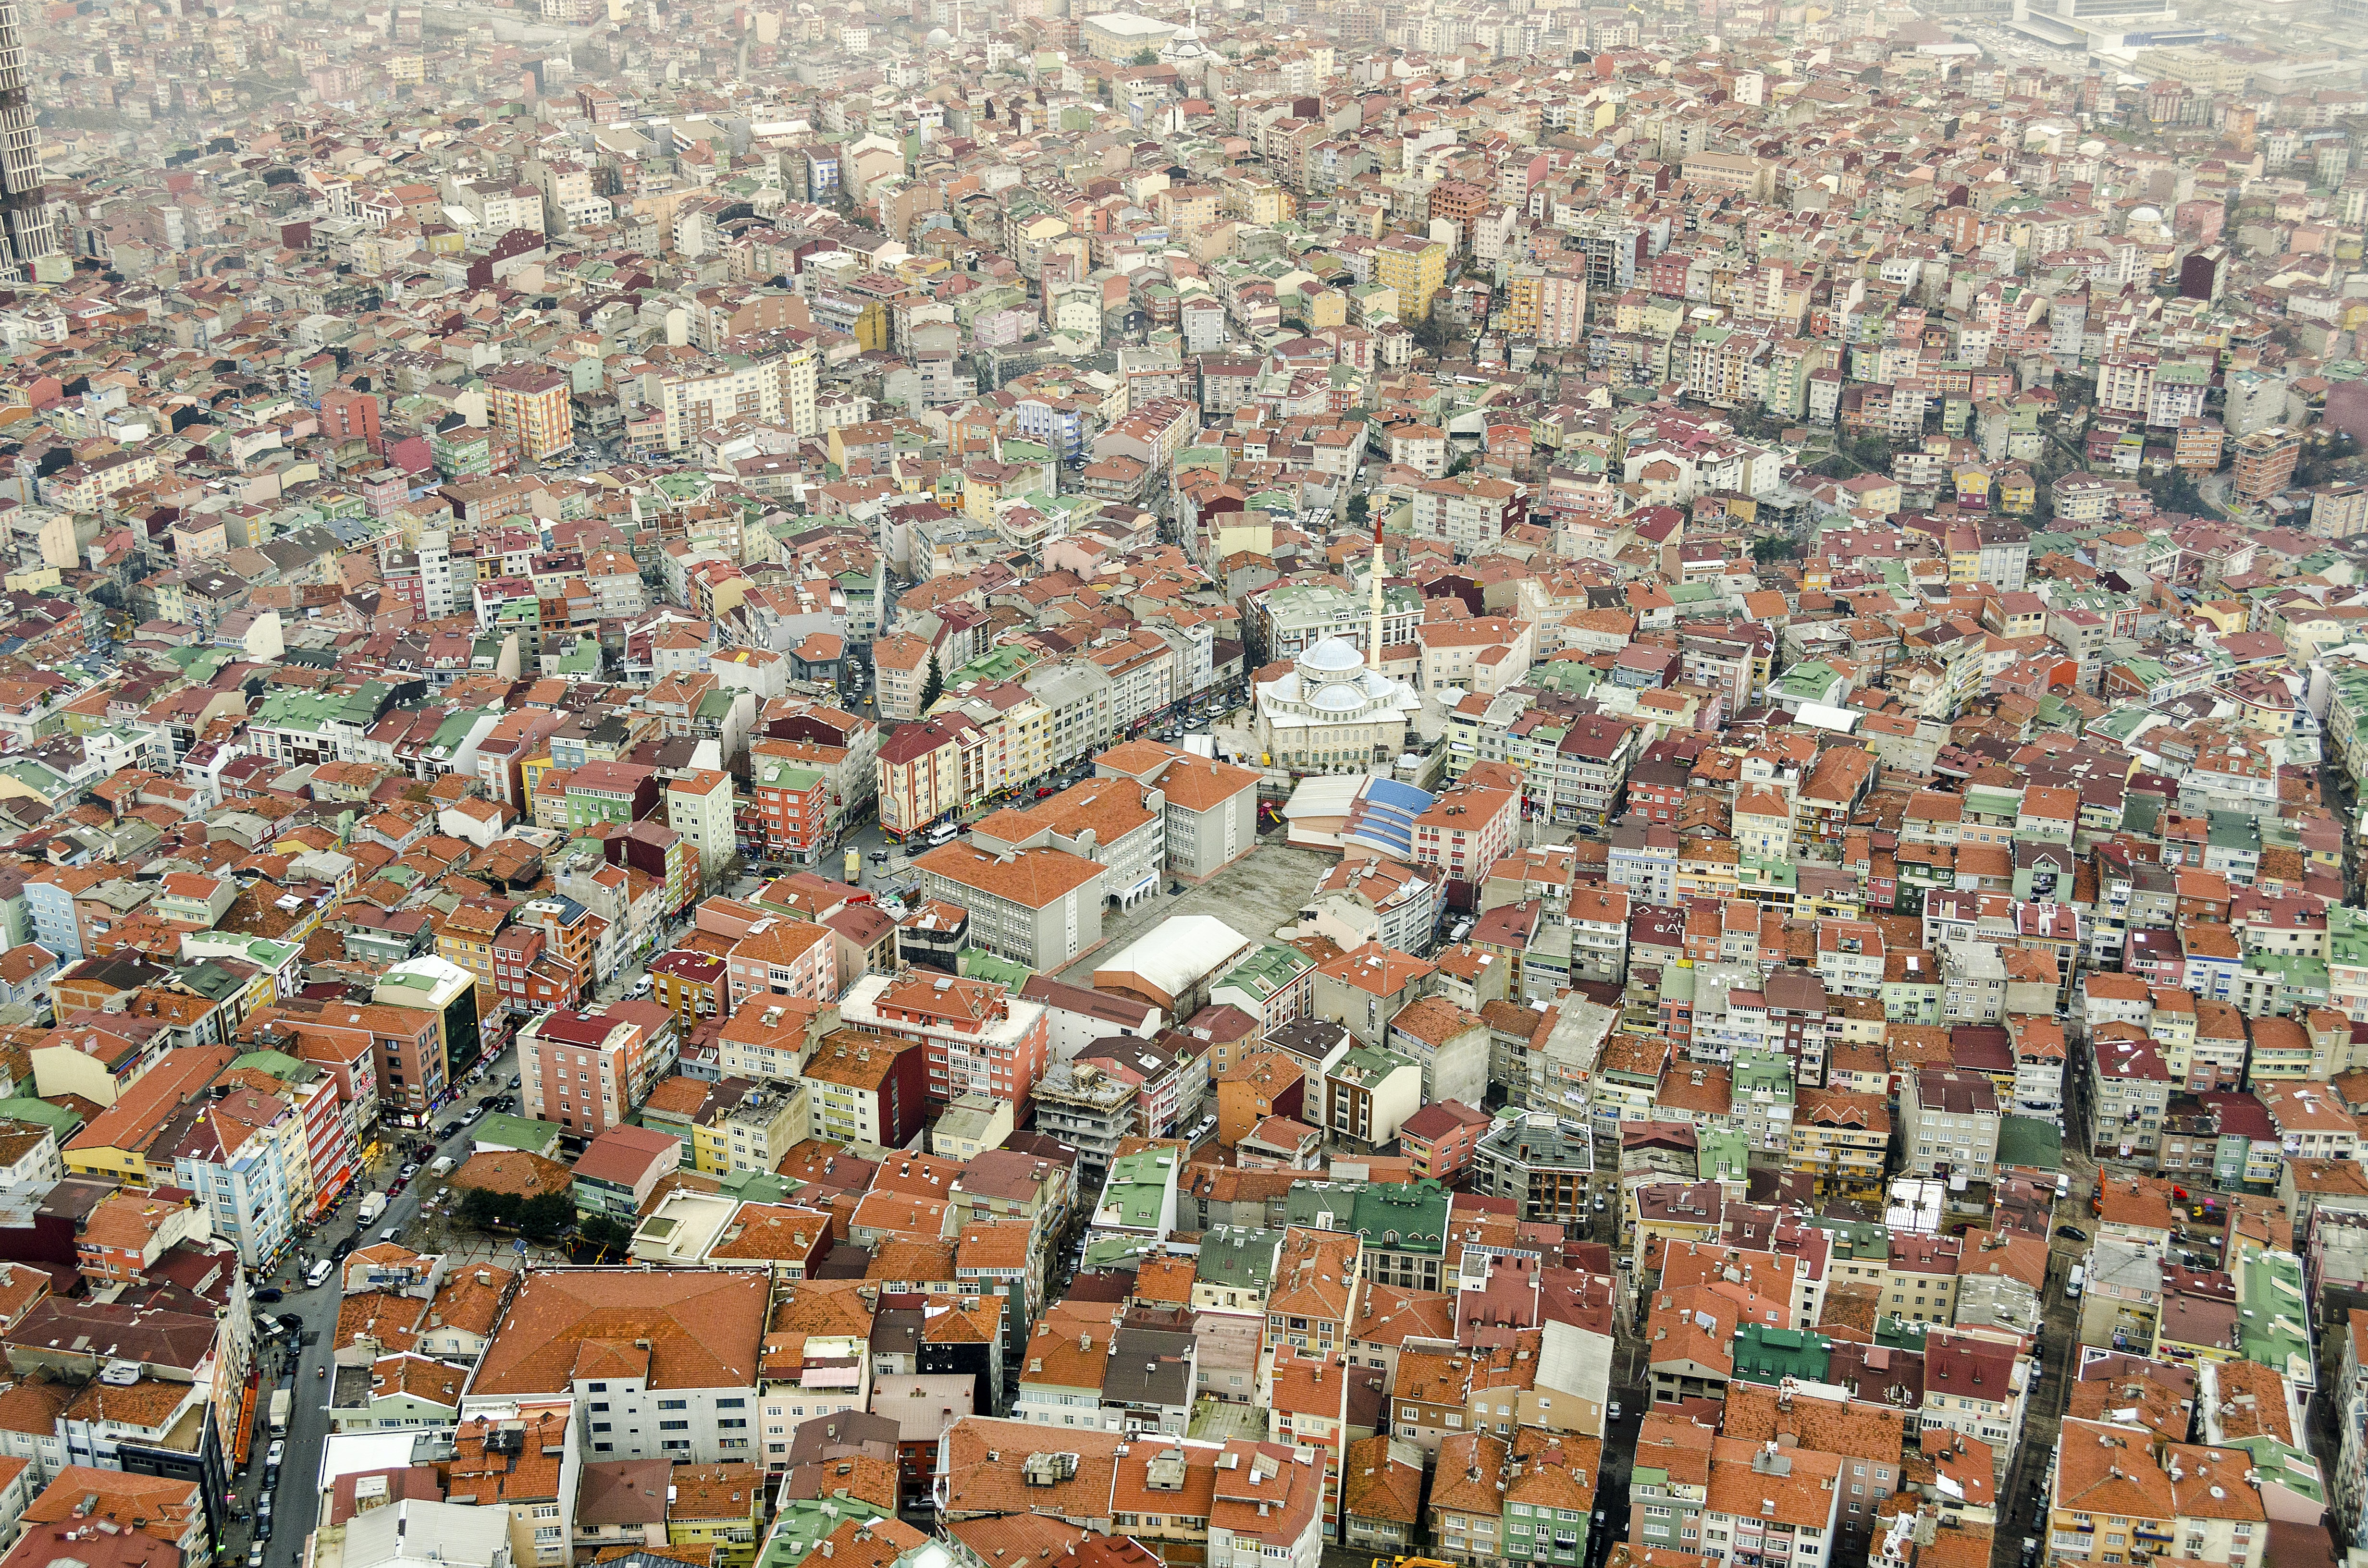 Aerial view of a town full of houses with clay tile roofs